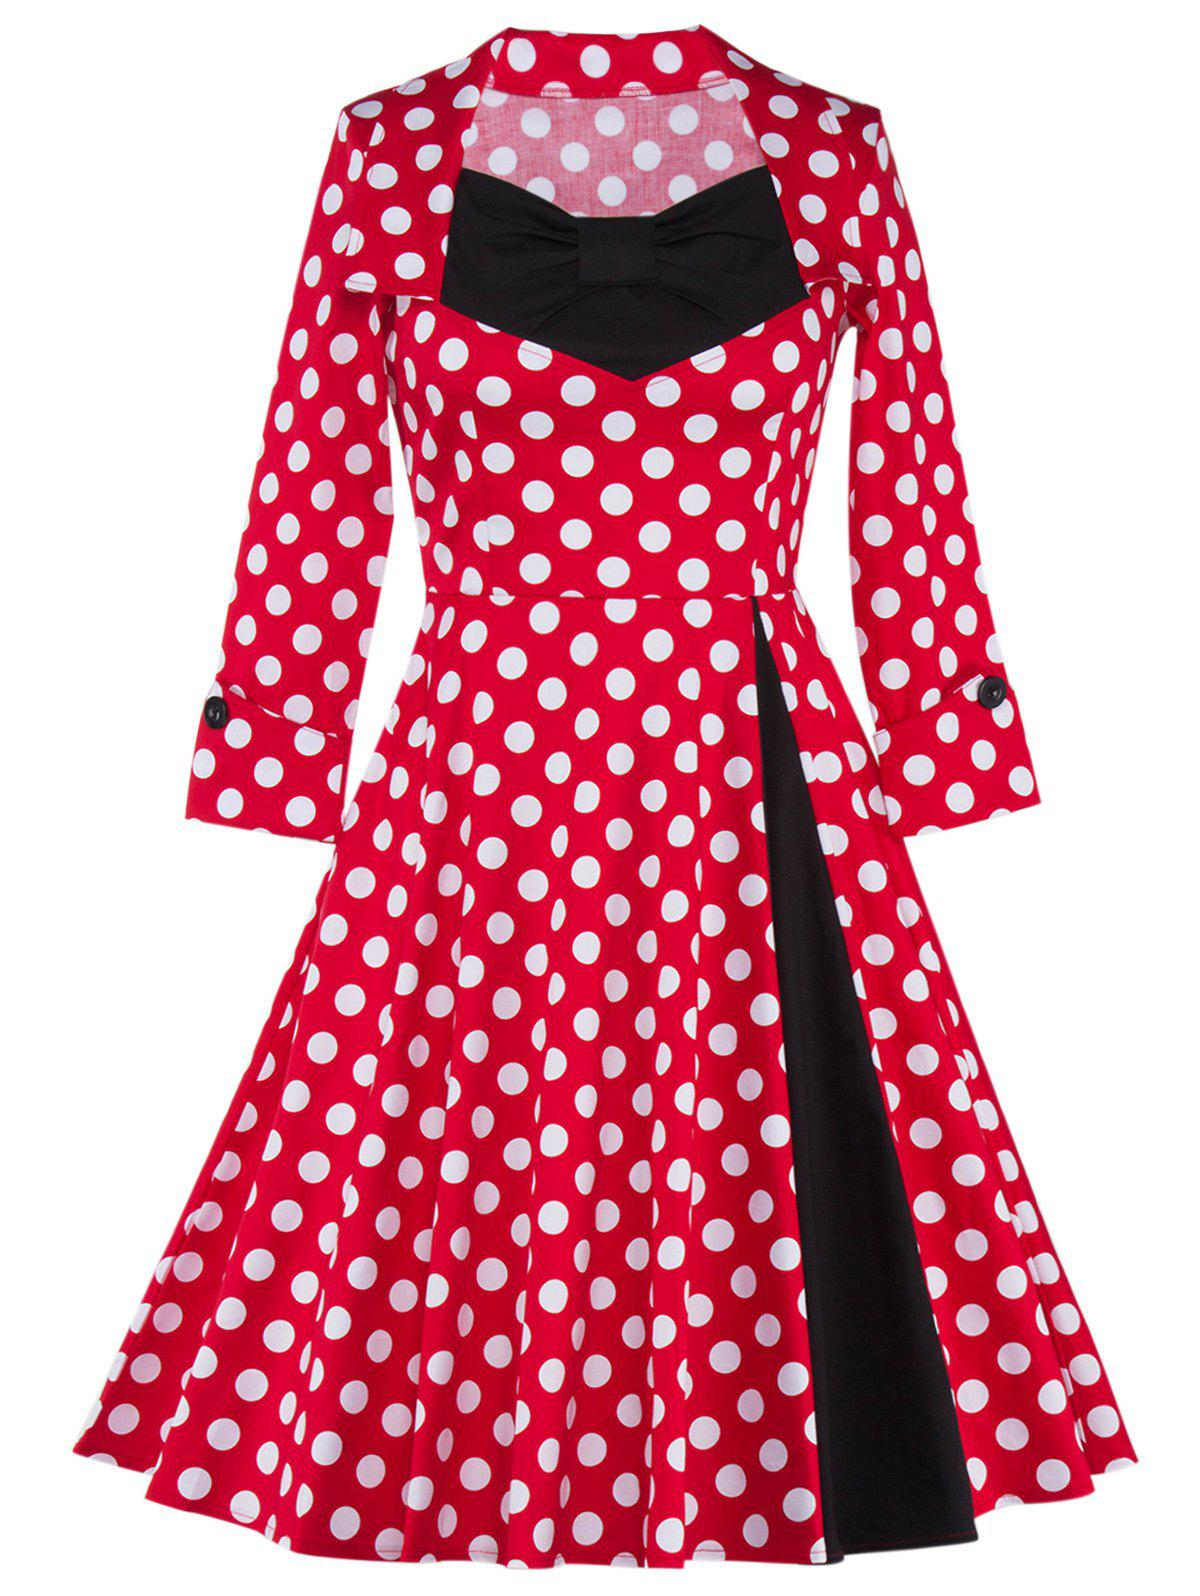 Online Bowknot Polka Dot Insert Swing Dress